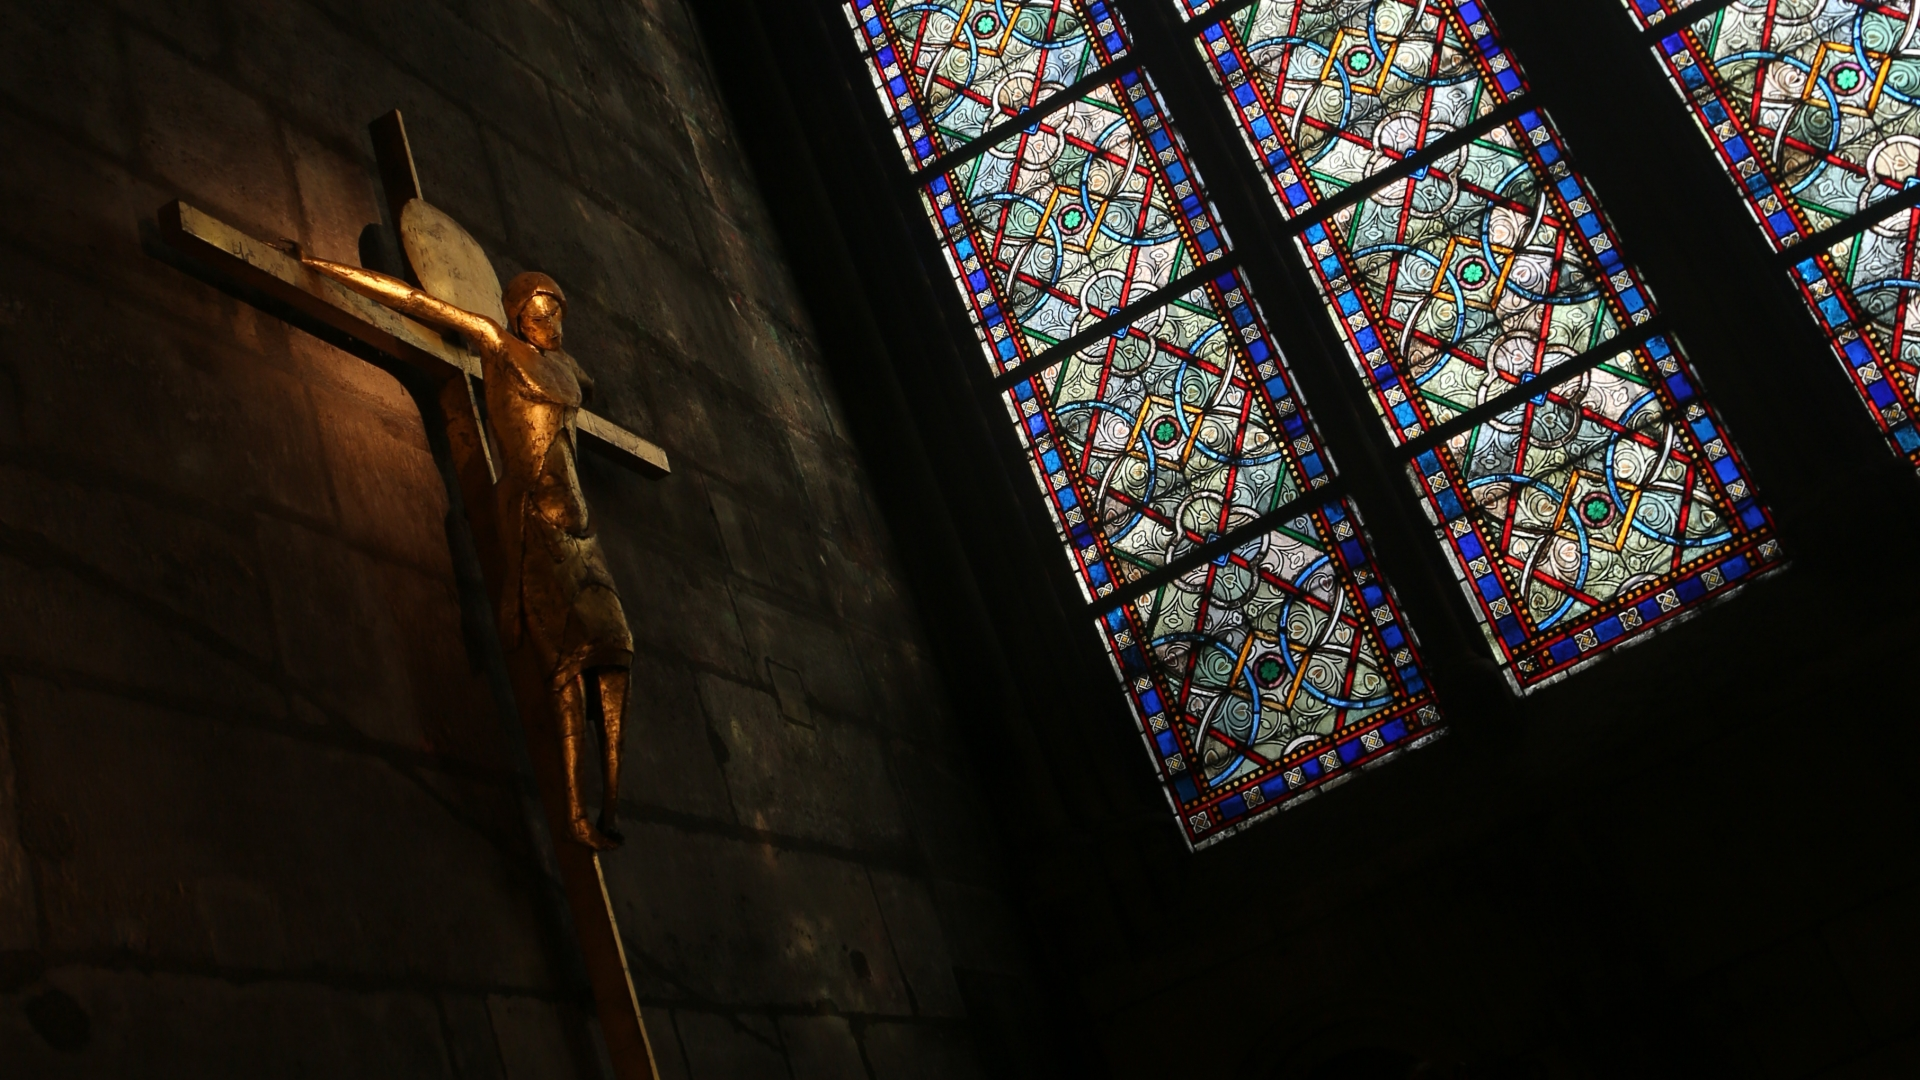 Statue of Jesus Christ on the crucifix by a stained glass window inside Notre-Dame Cathedral, Paris. (Credit: Waring Abbott/Getty Images)